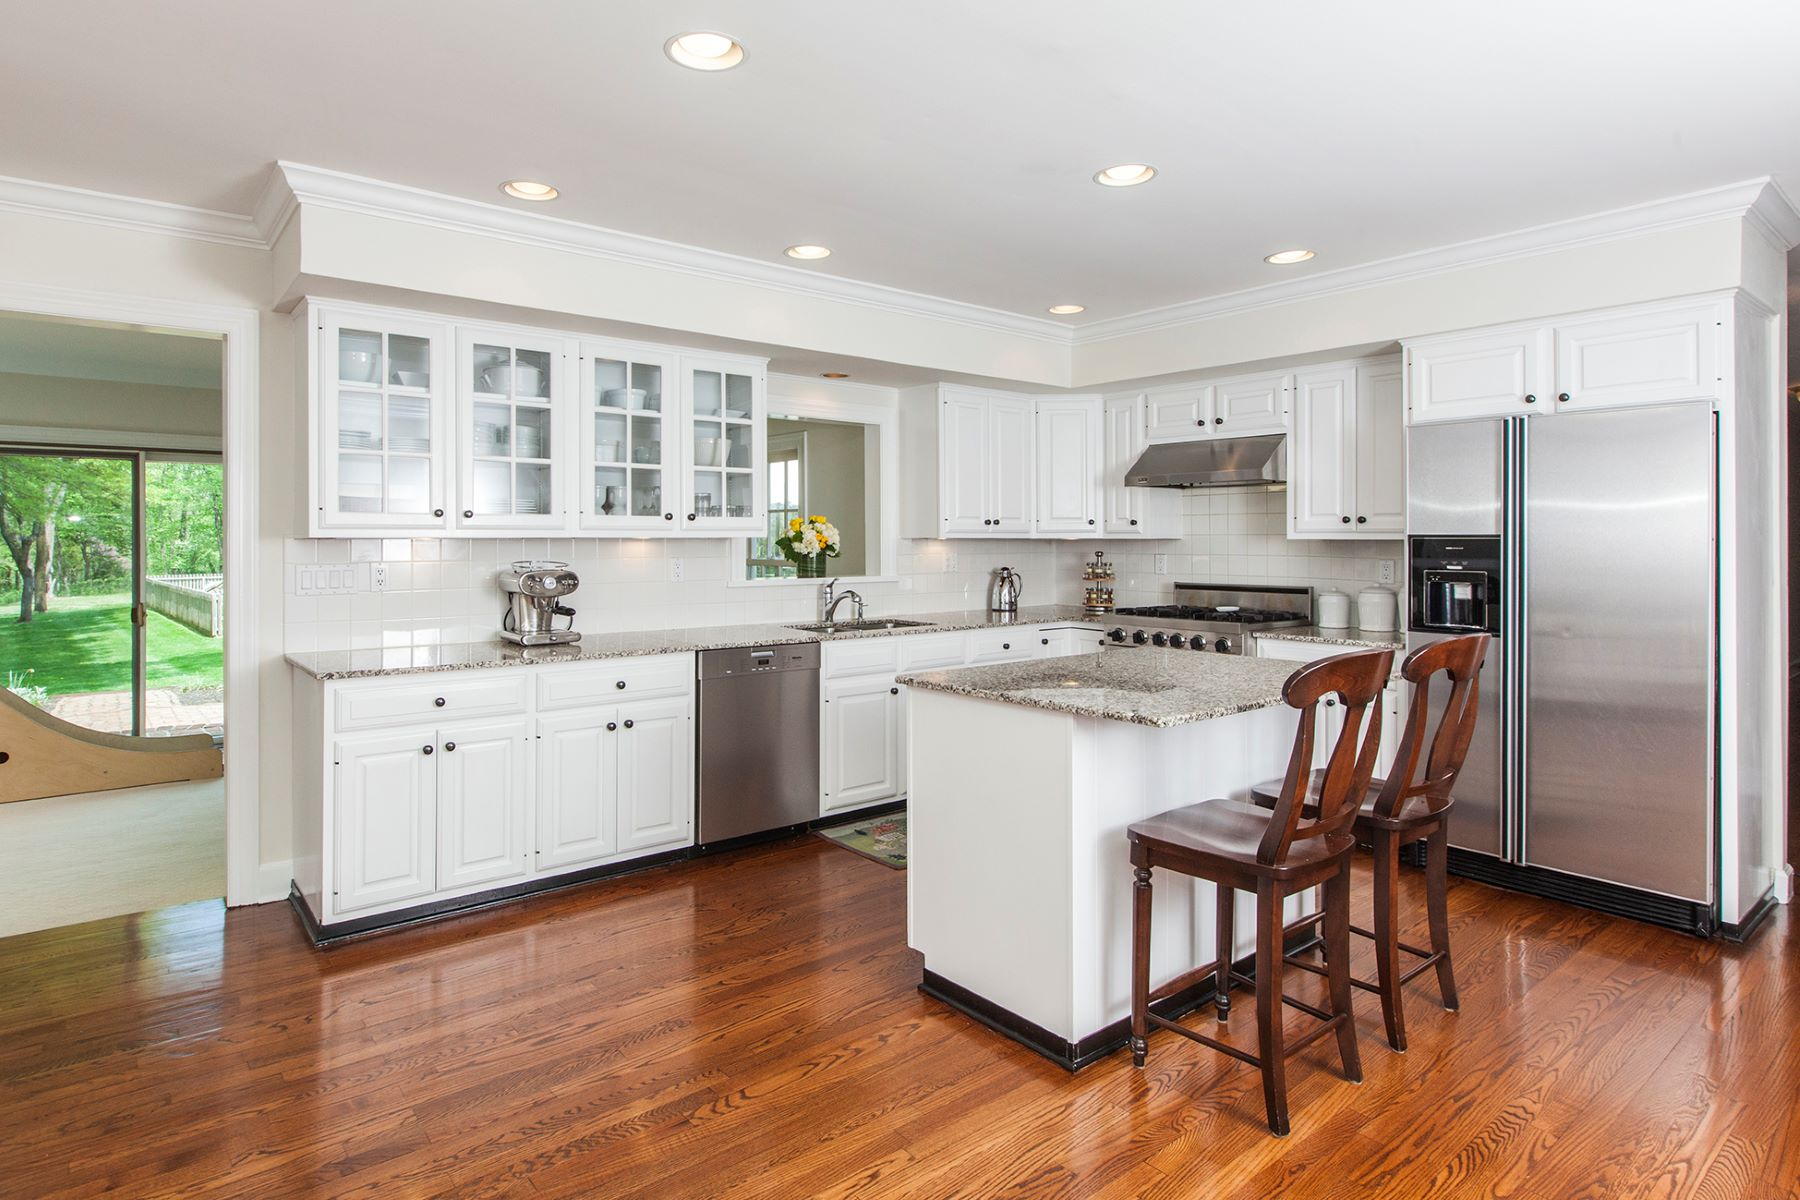 Additional photo for property listing at A Dream Come True 79 West Shore Drive, Pennington, New Jersey 08534 United States